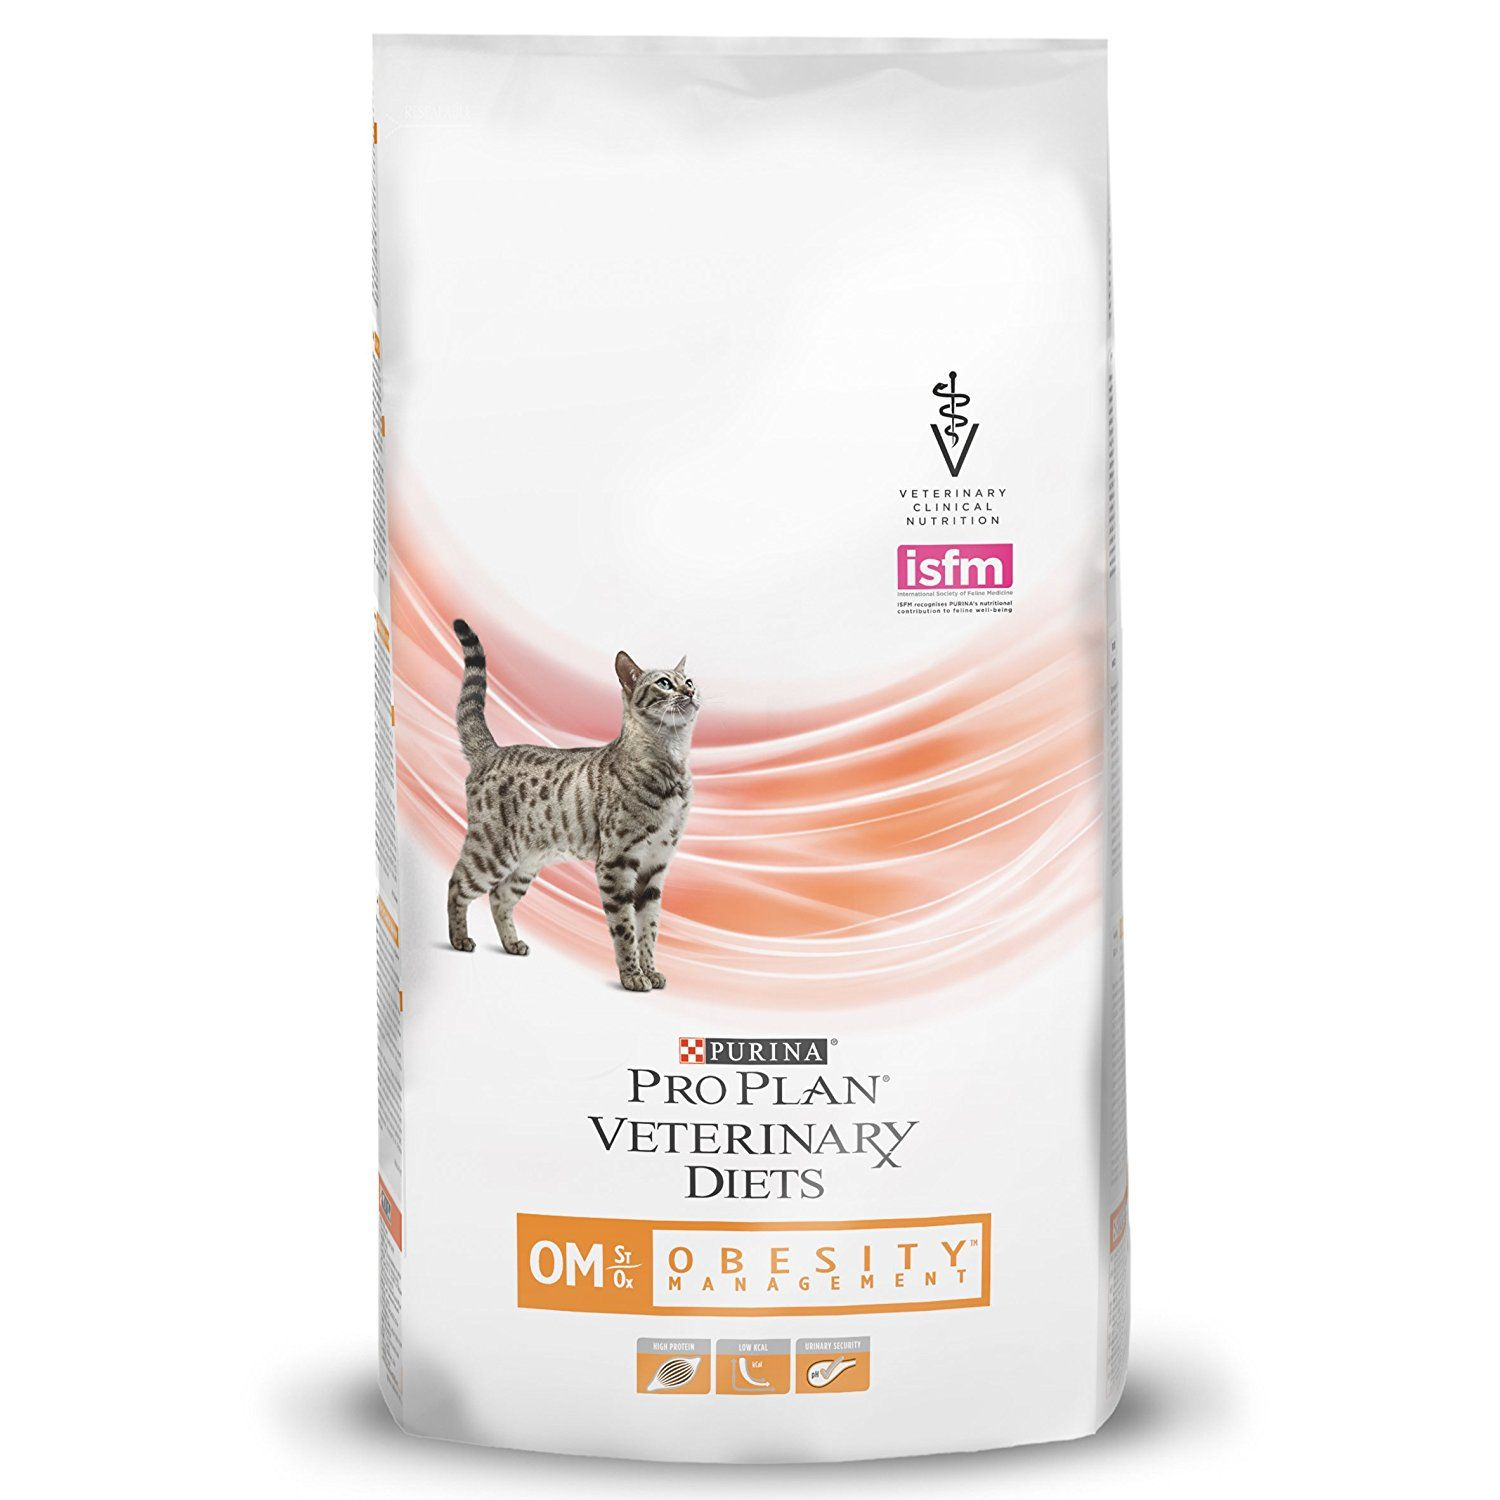 Purina Pro Plan Veterinary Diets Dry Cat Food Om St Ox Obesity Management Clinical Diet 1 5 Kg Dry Cat Food Cat Food Cat Diet